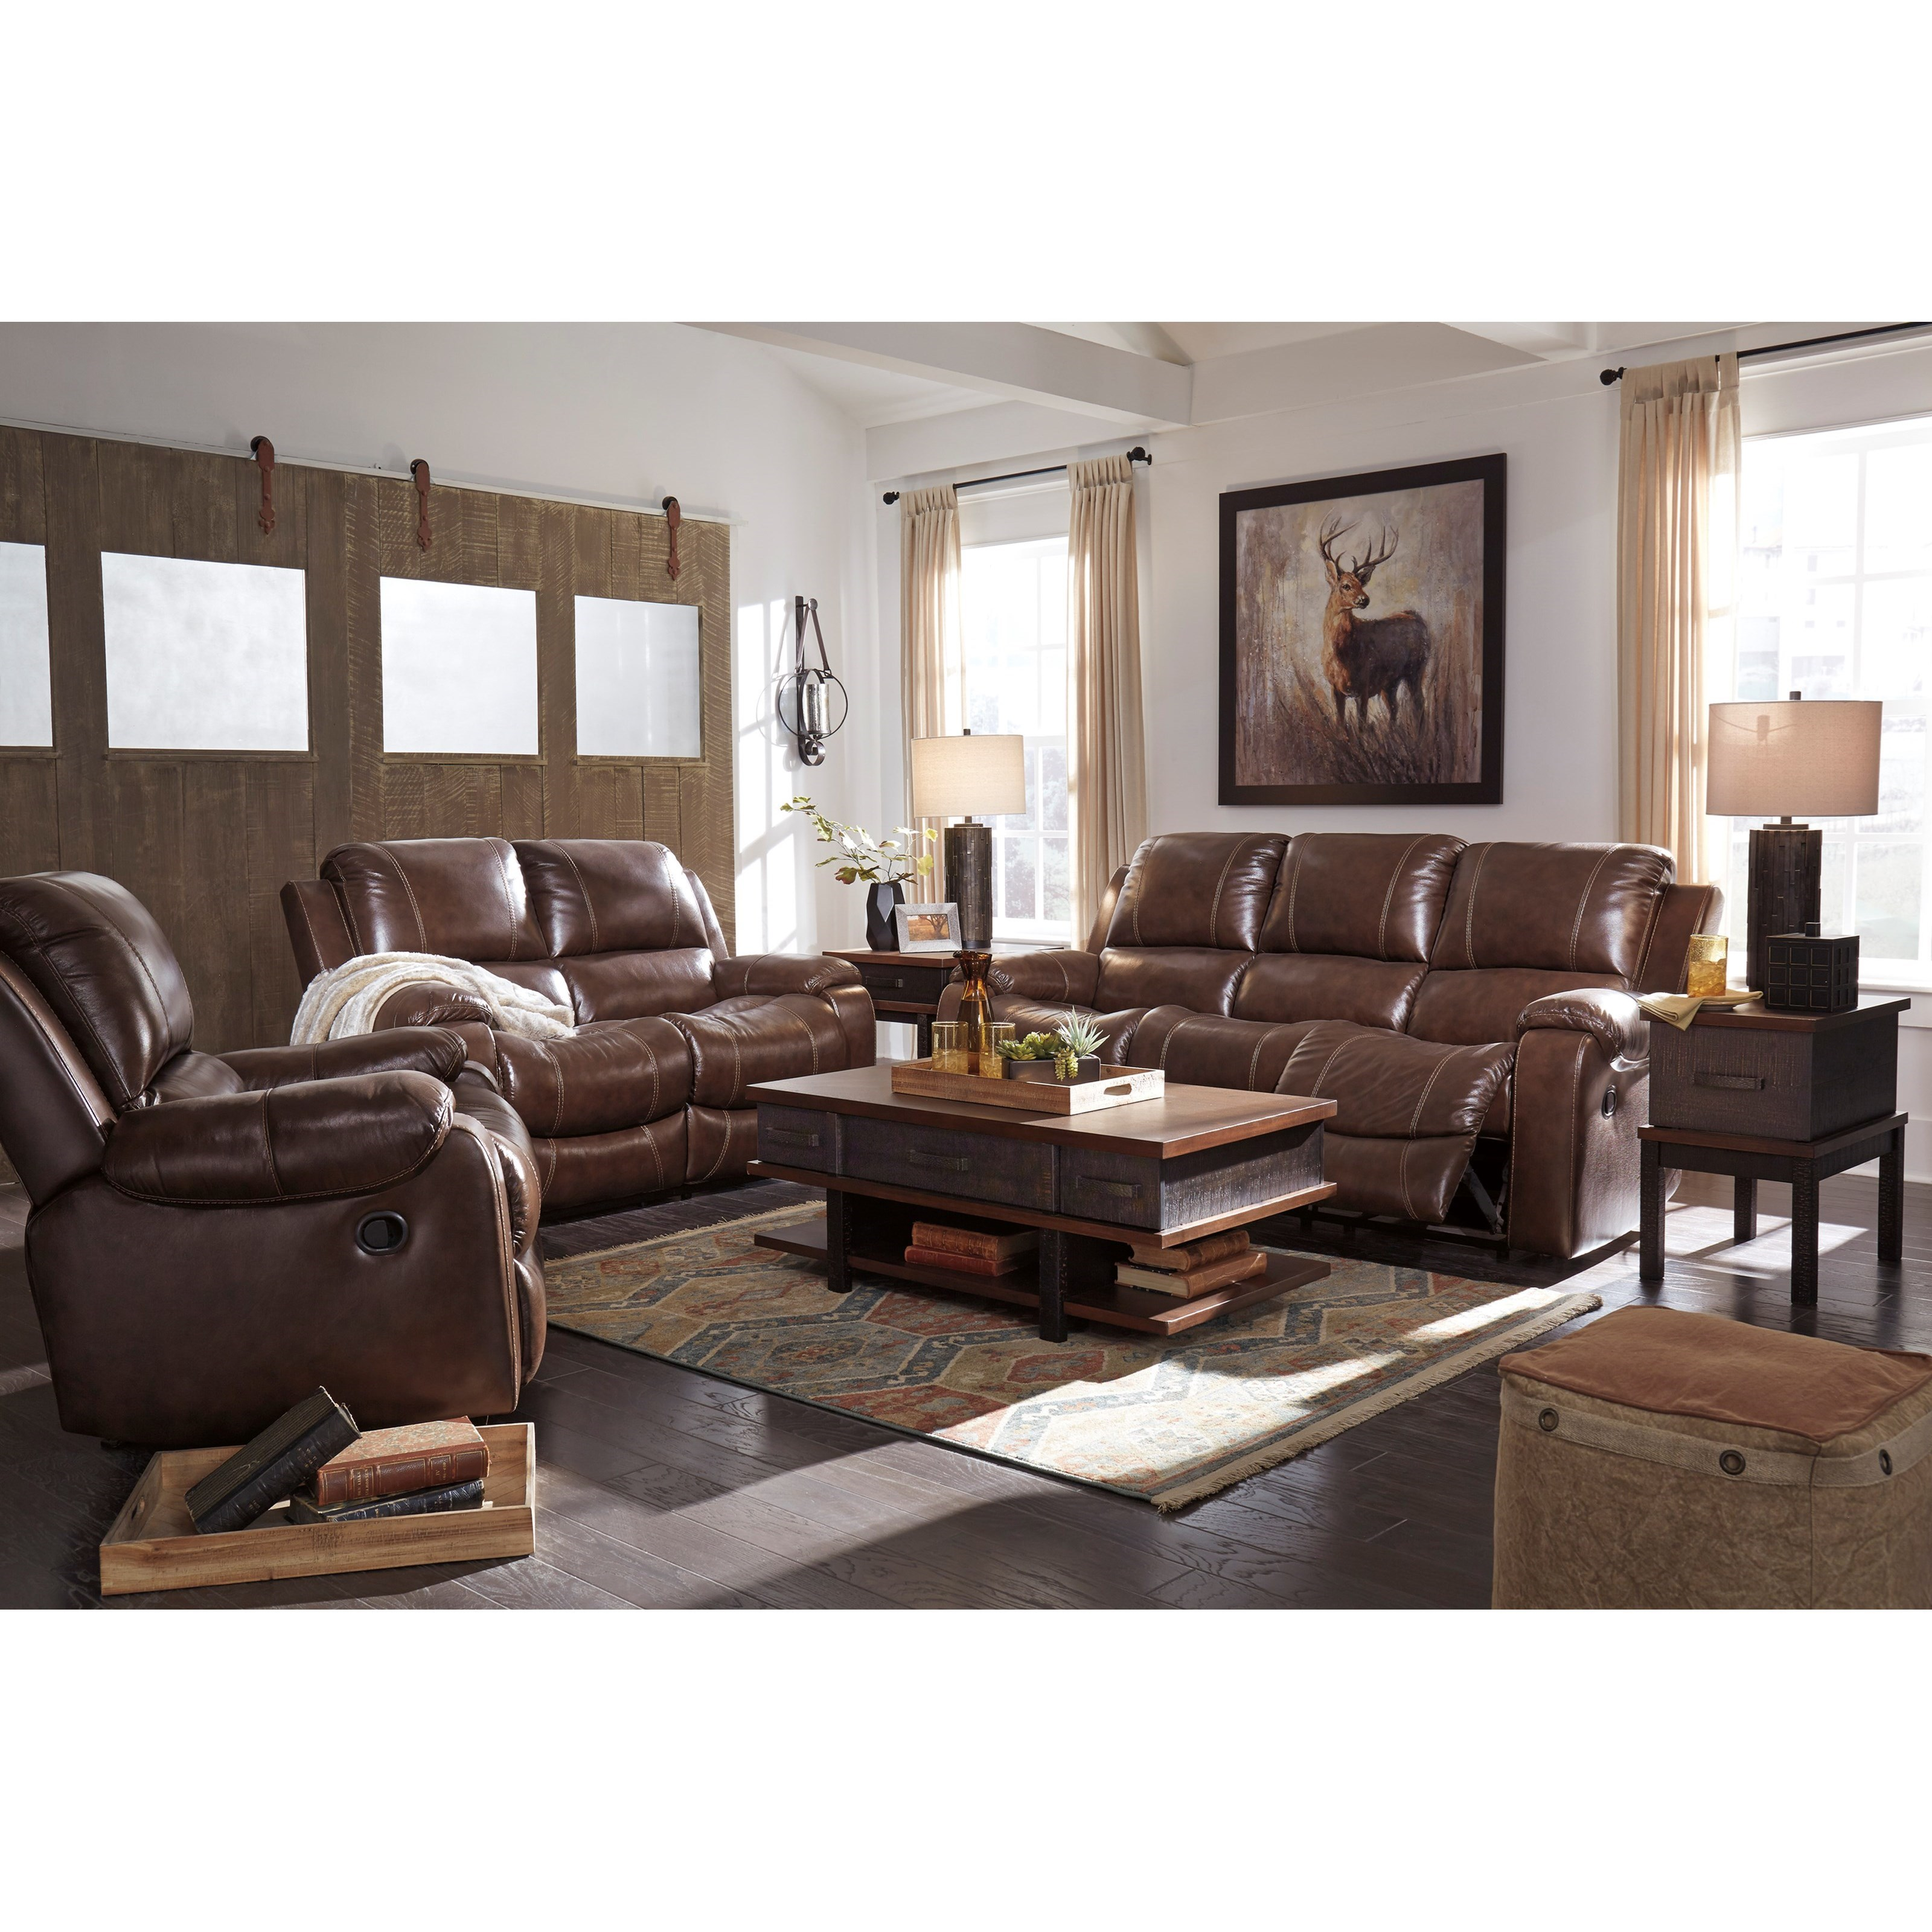 Rackingburg Reclining Living Room Group by Signature Design by Ashley at Sparks HomeStore